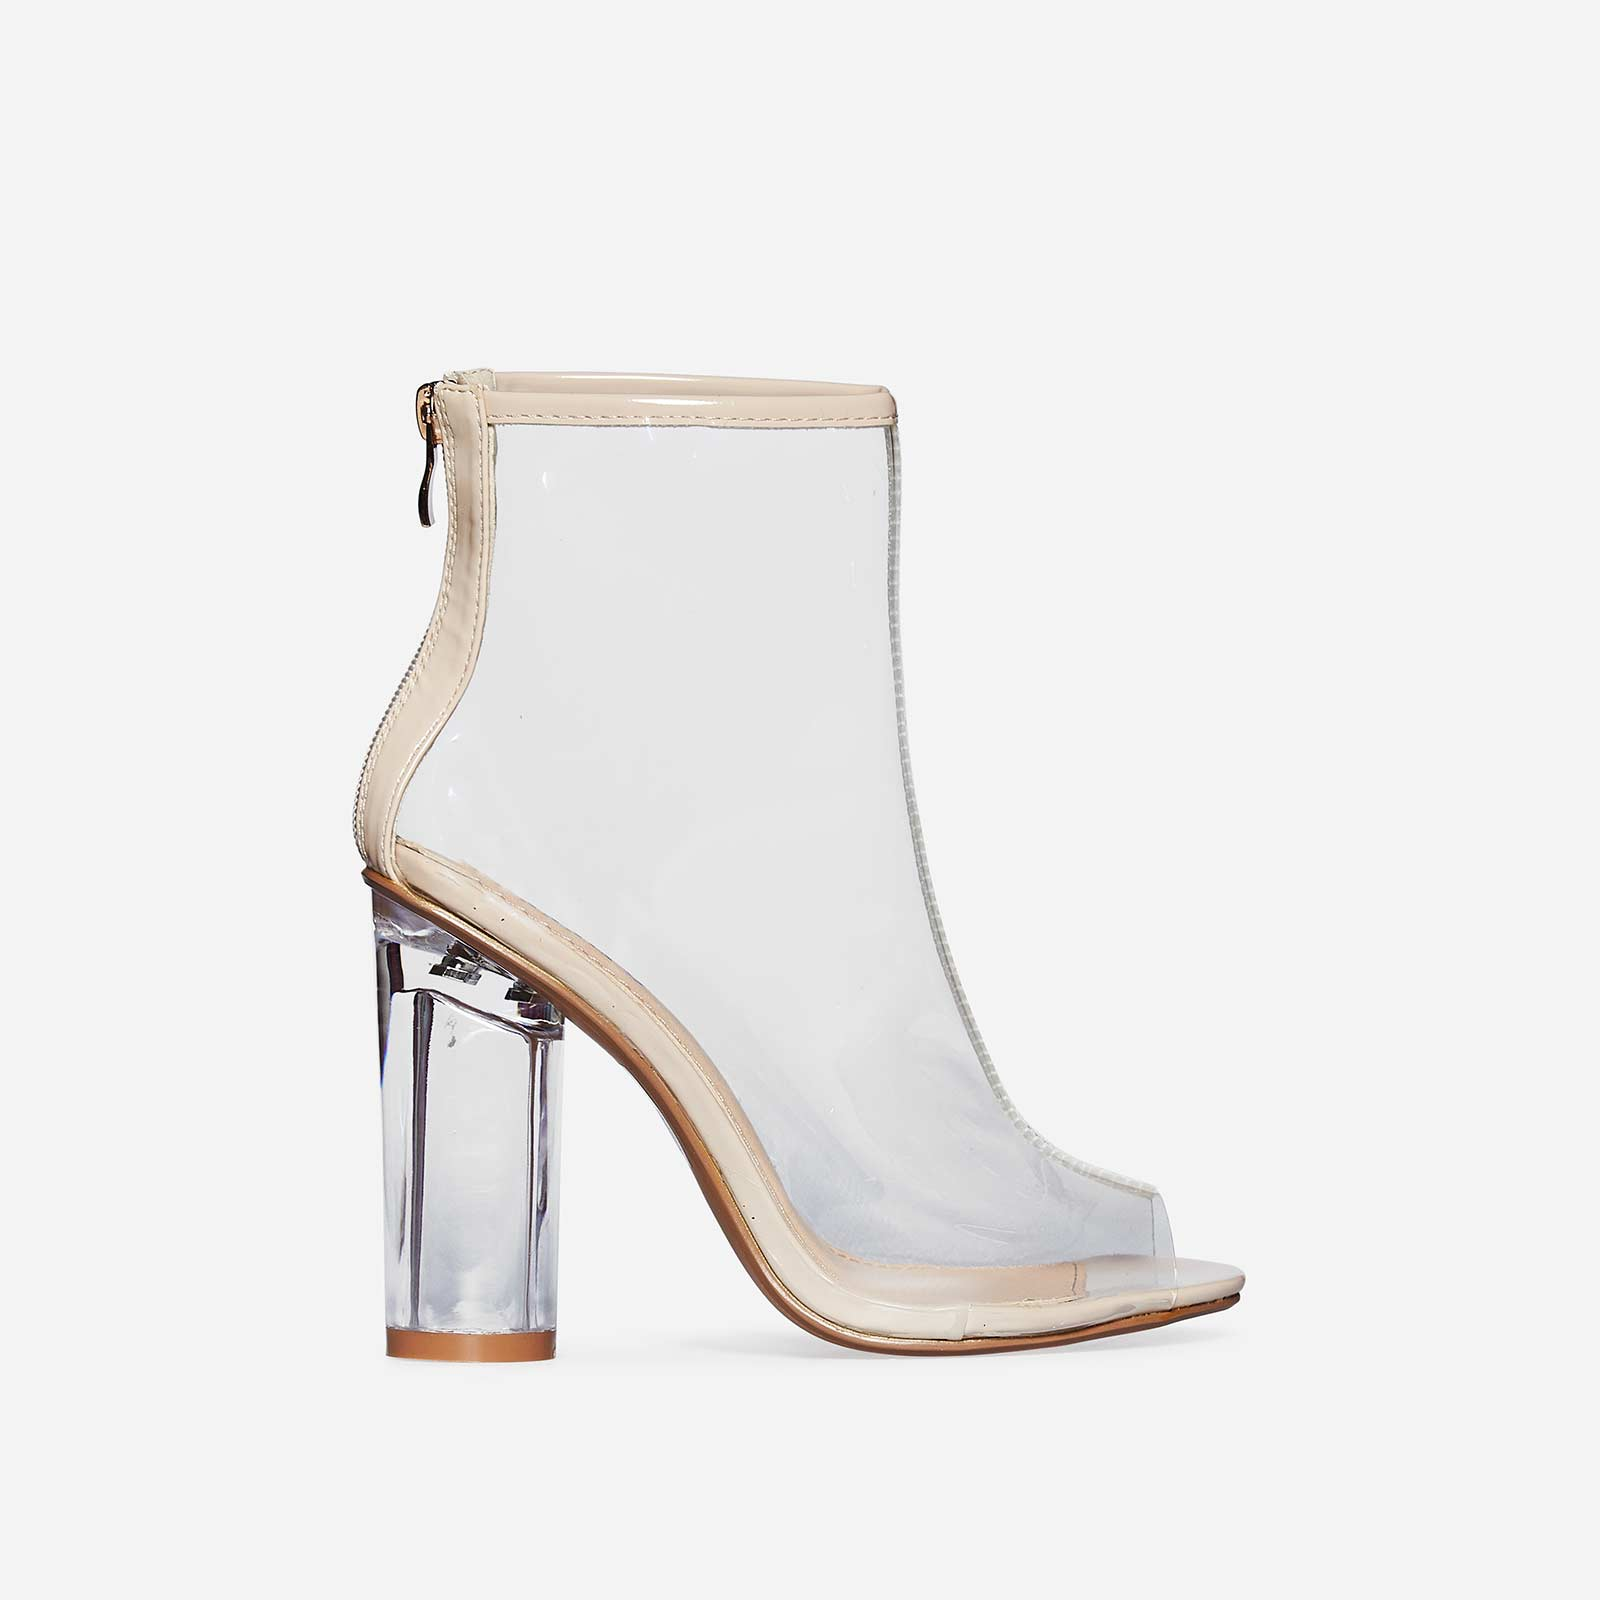 Cate Peep Toe Perspex Ankle Boot In Nude Patent